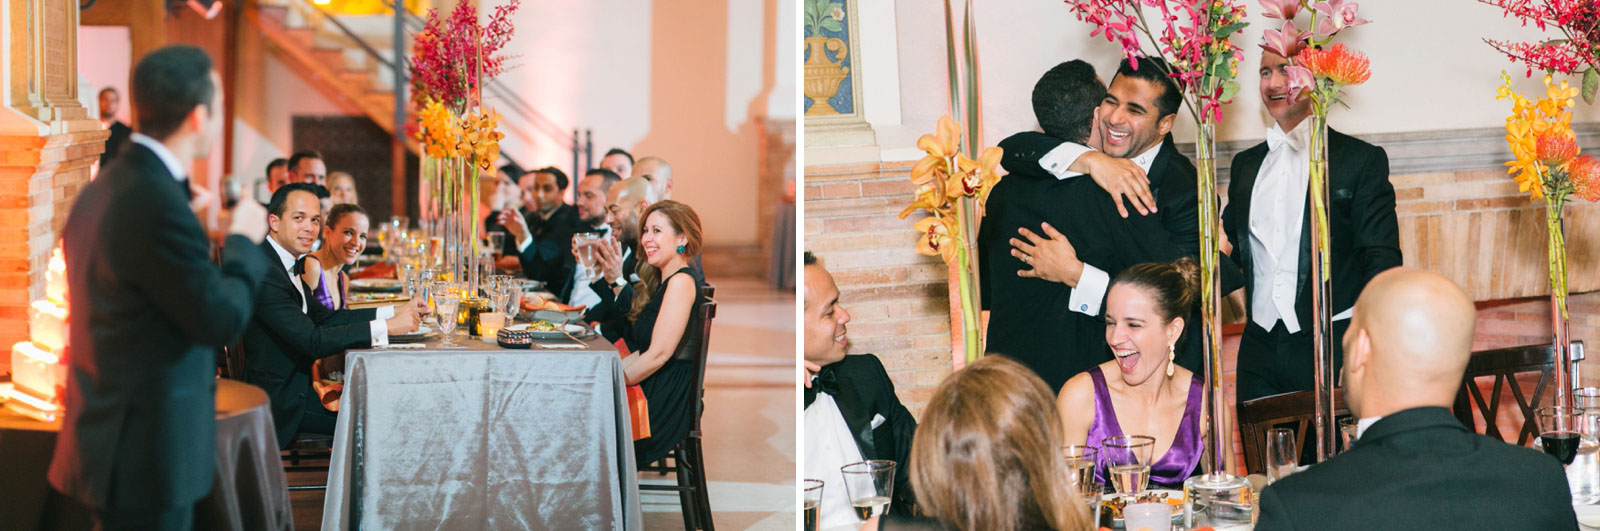 Guests laughing during best man speech, groom hugging best man after best man speech